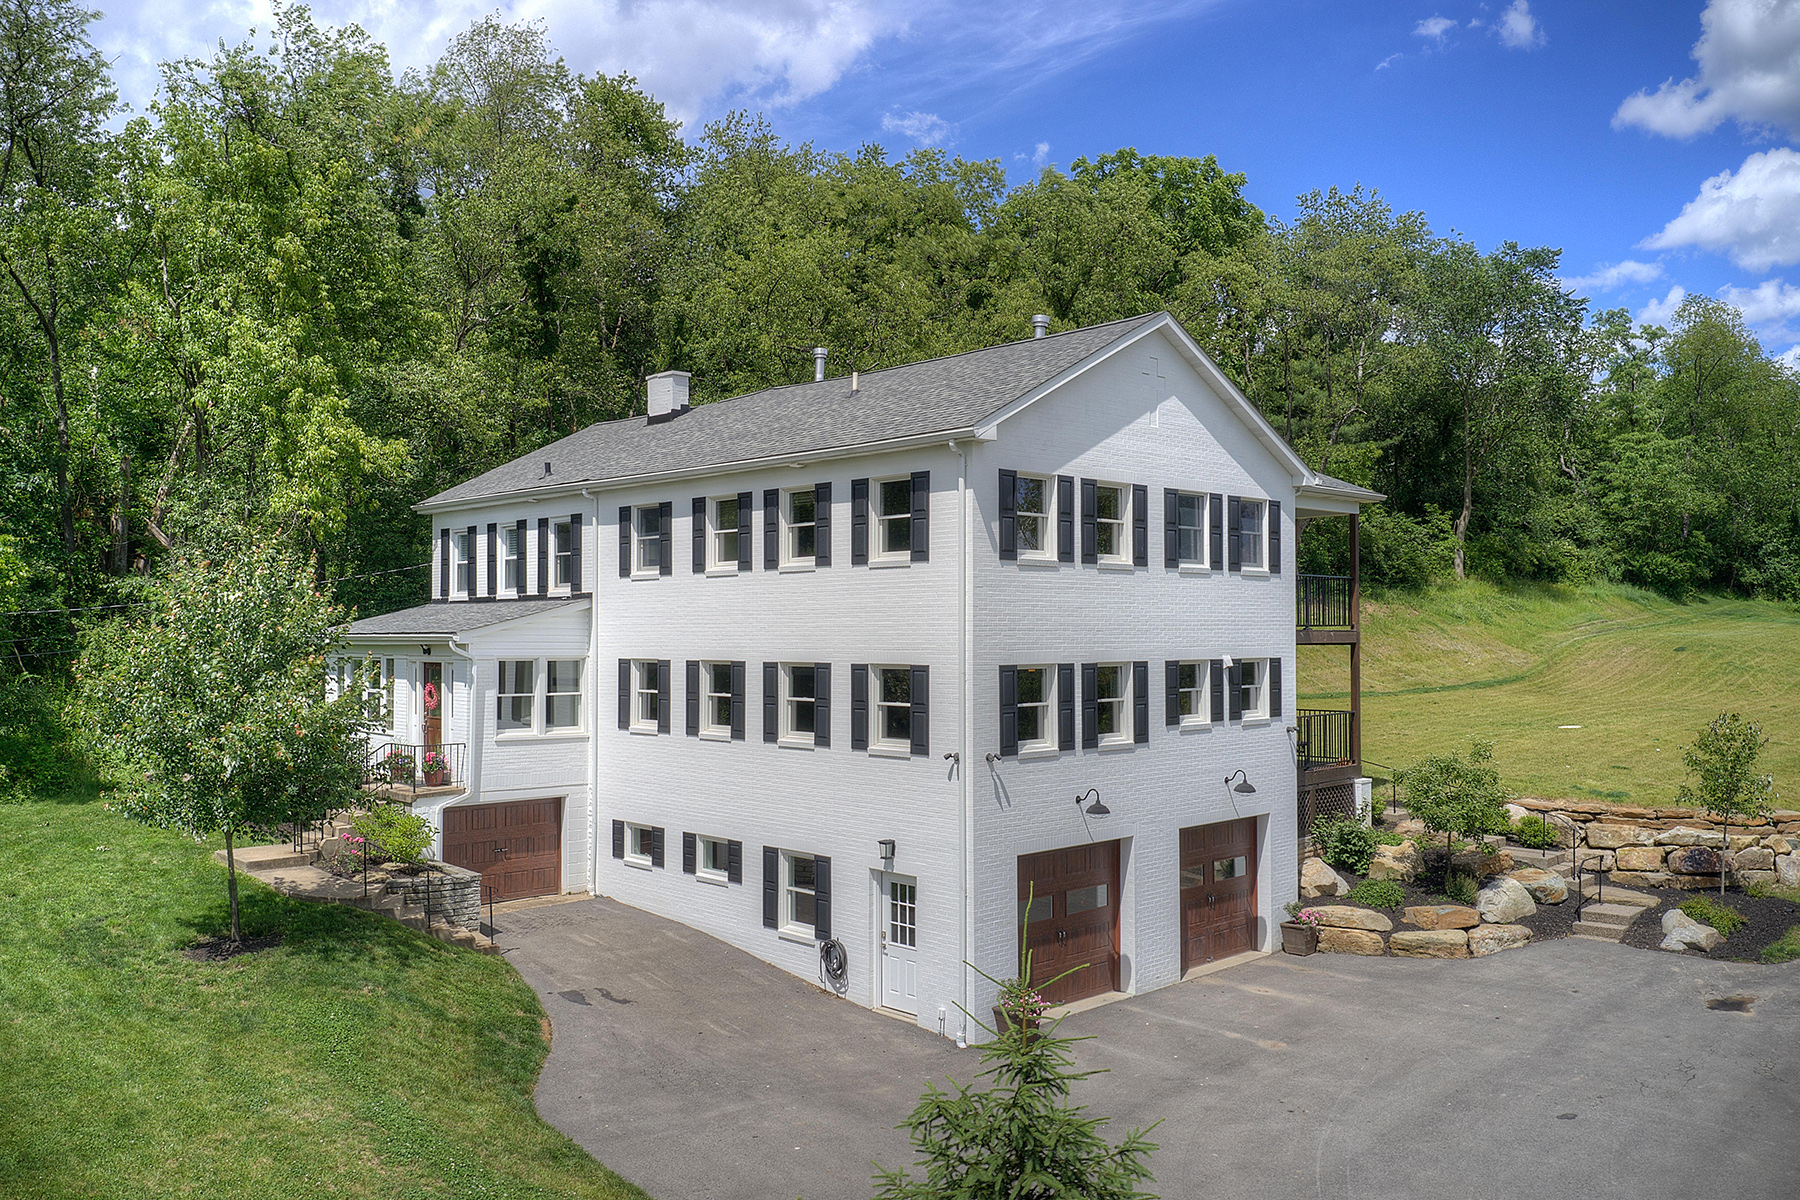 Single Family Homes for Sale at Chic Farmhouse on Private Acre- 2034 Henry Road 2034 Henry Road Sewickley, Pennsylvania 15143 United States